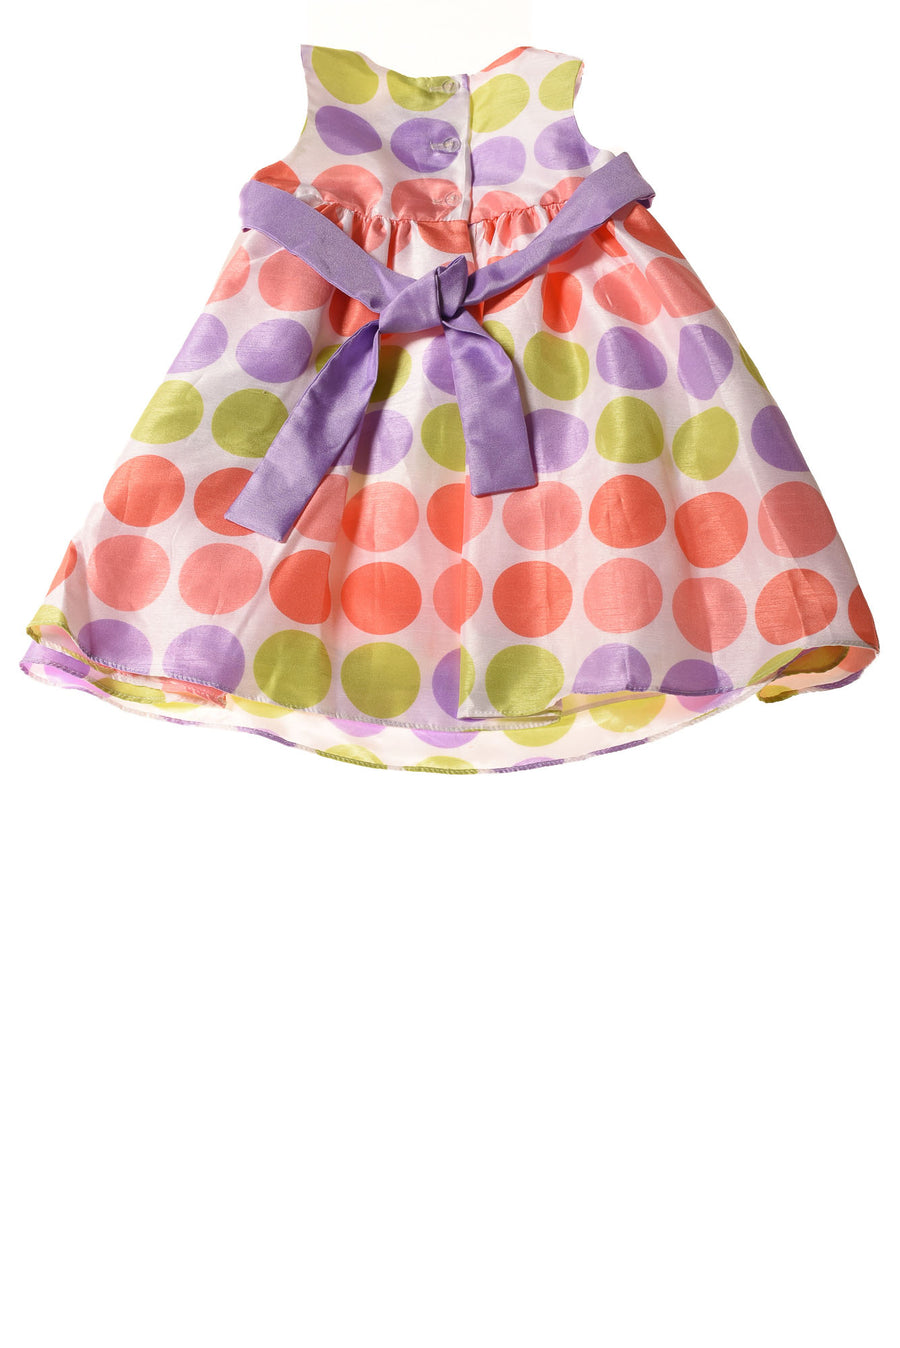 NEW Rare Editions Baby Girl's Dress  18 Months Lilac / Polka Dot Print